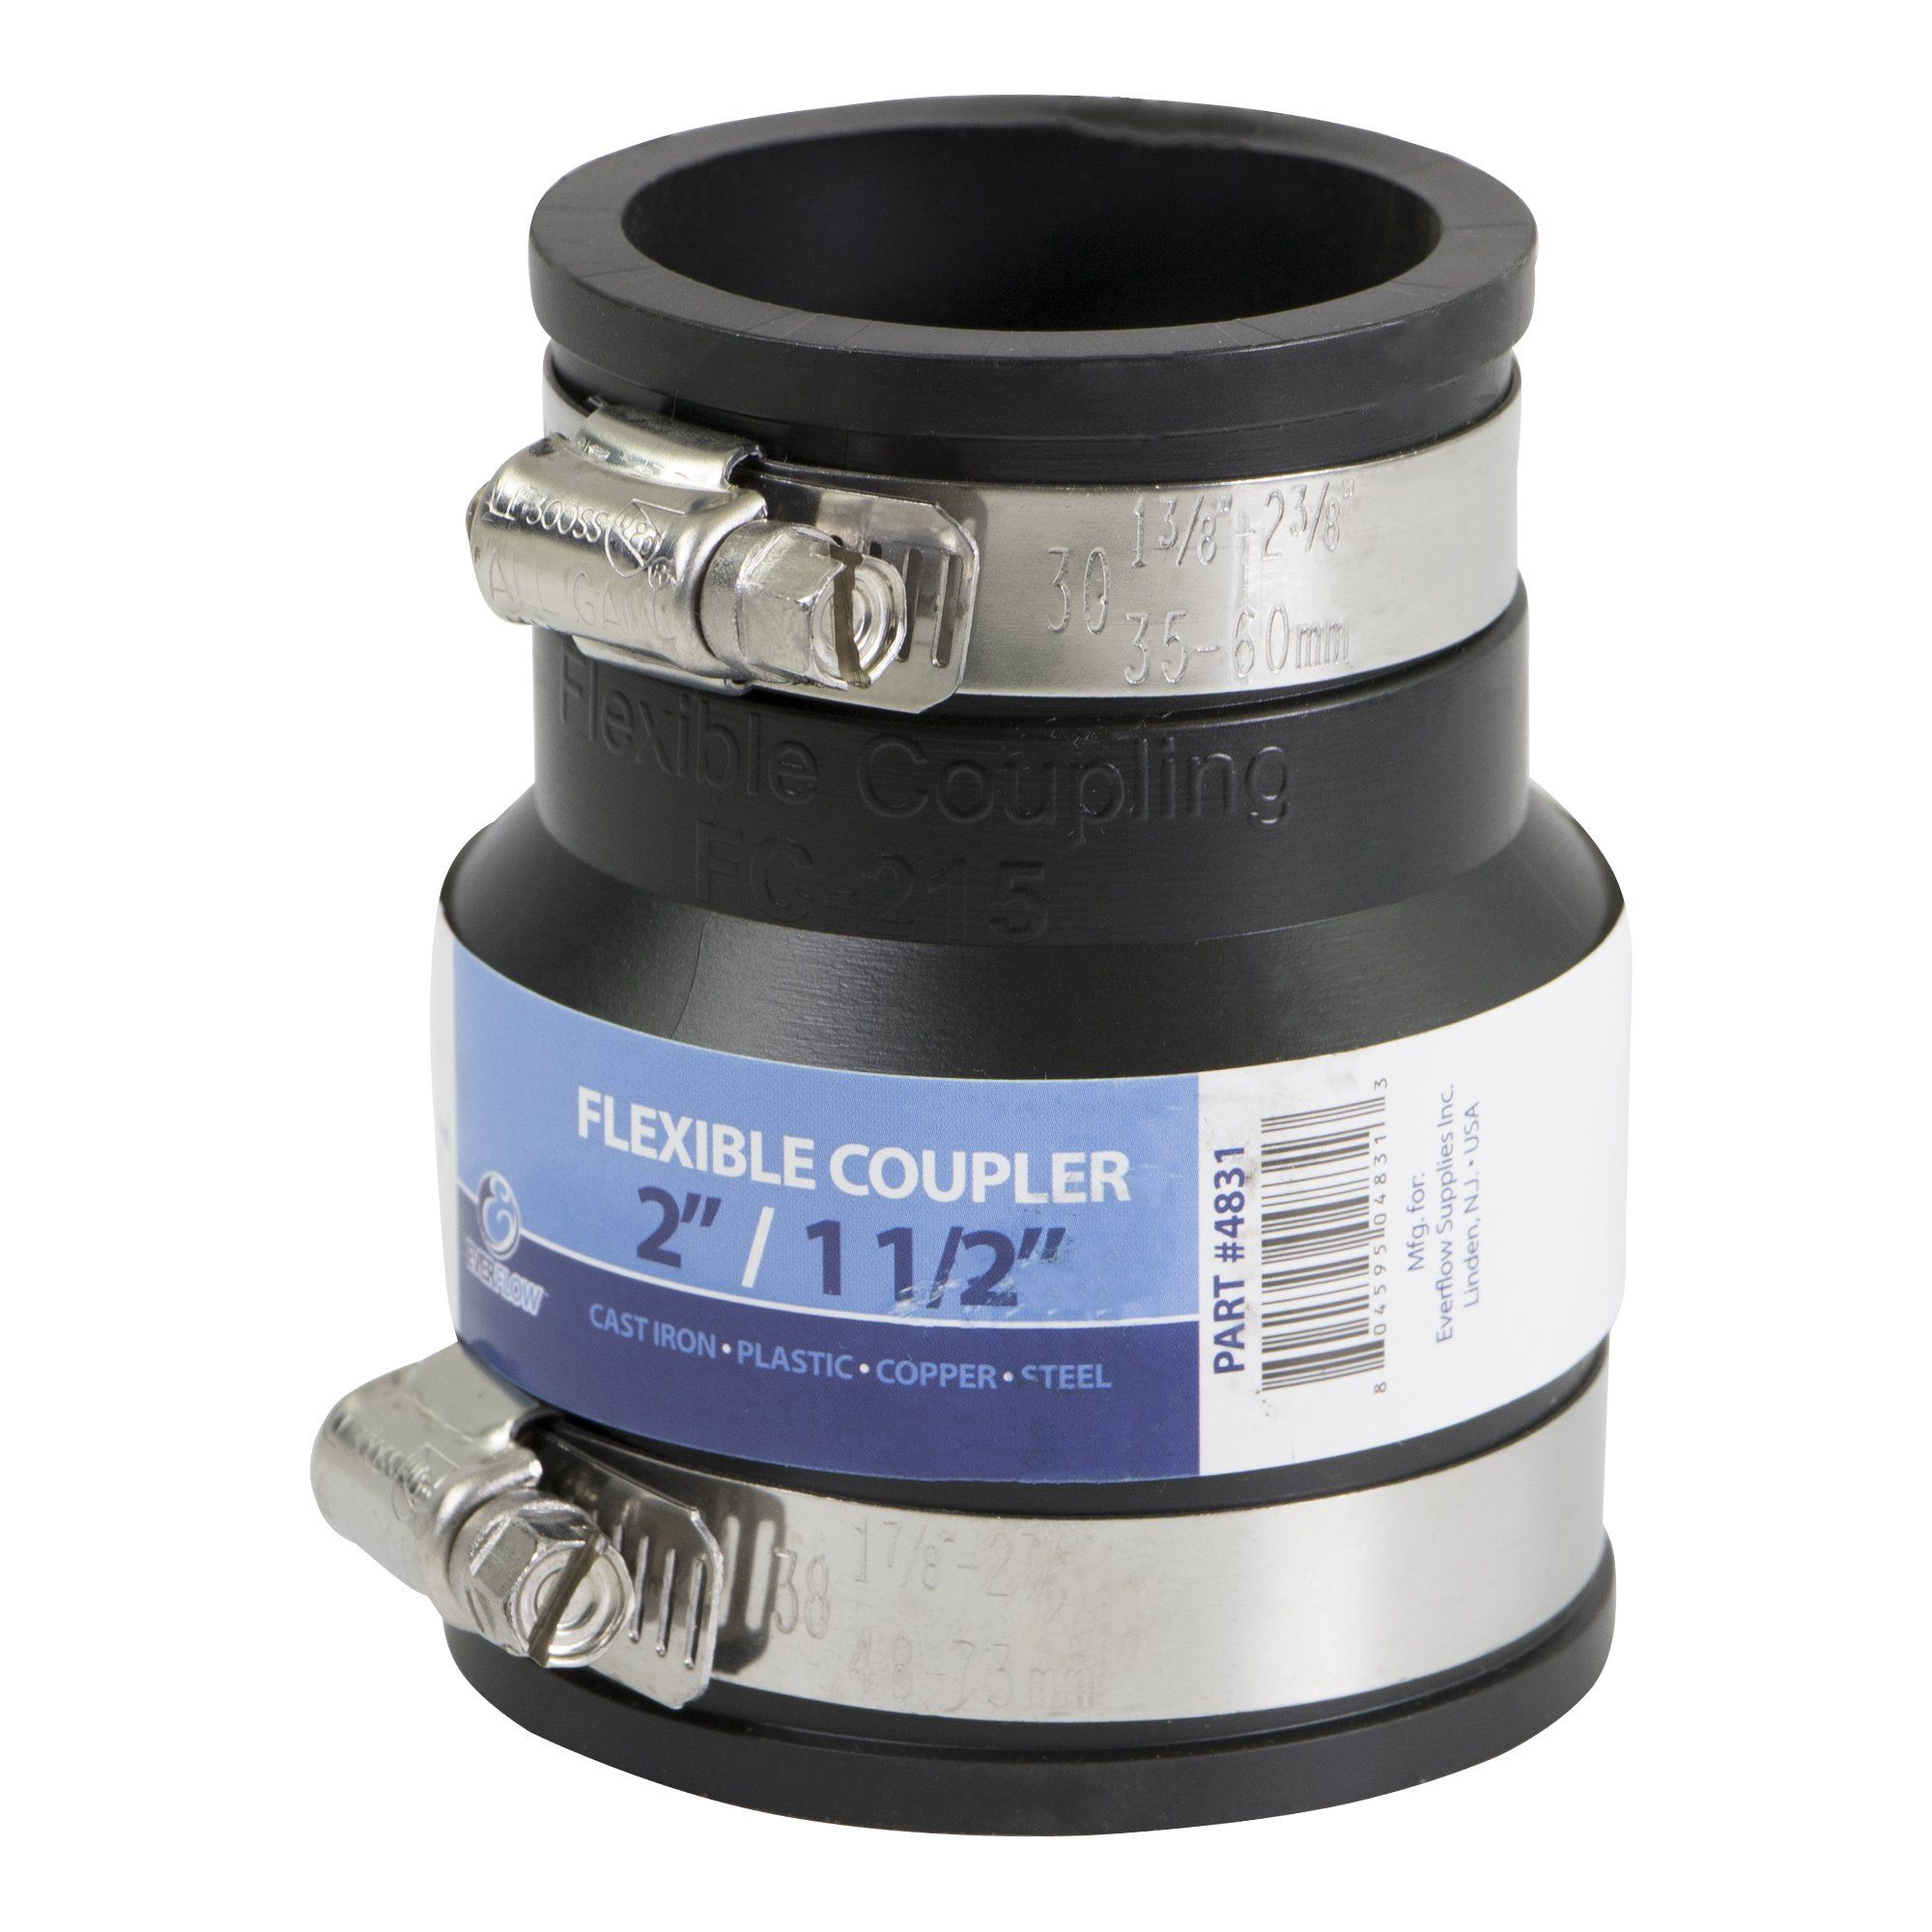 Everconnect 4831 Flexible Pvc Reducing Rubber Coupling With Stainless Steel Clamps 2 X 1 1 2 Inch Black Ad Pvc Aff Flexibility Stainless Stainless Steel